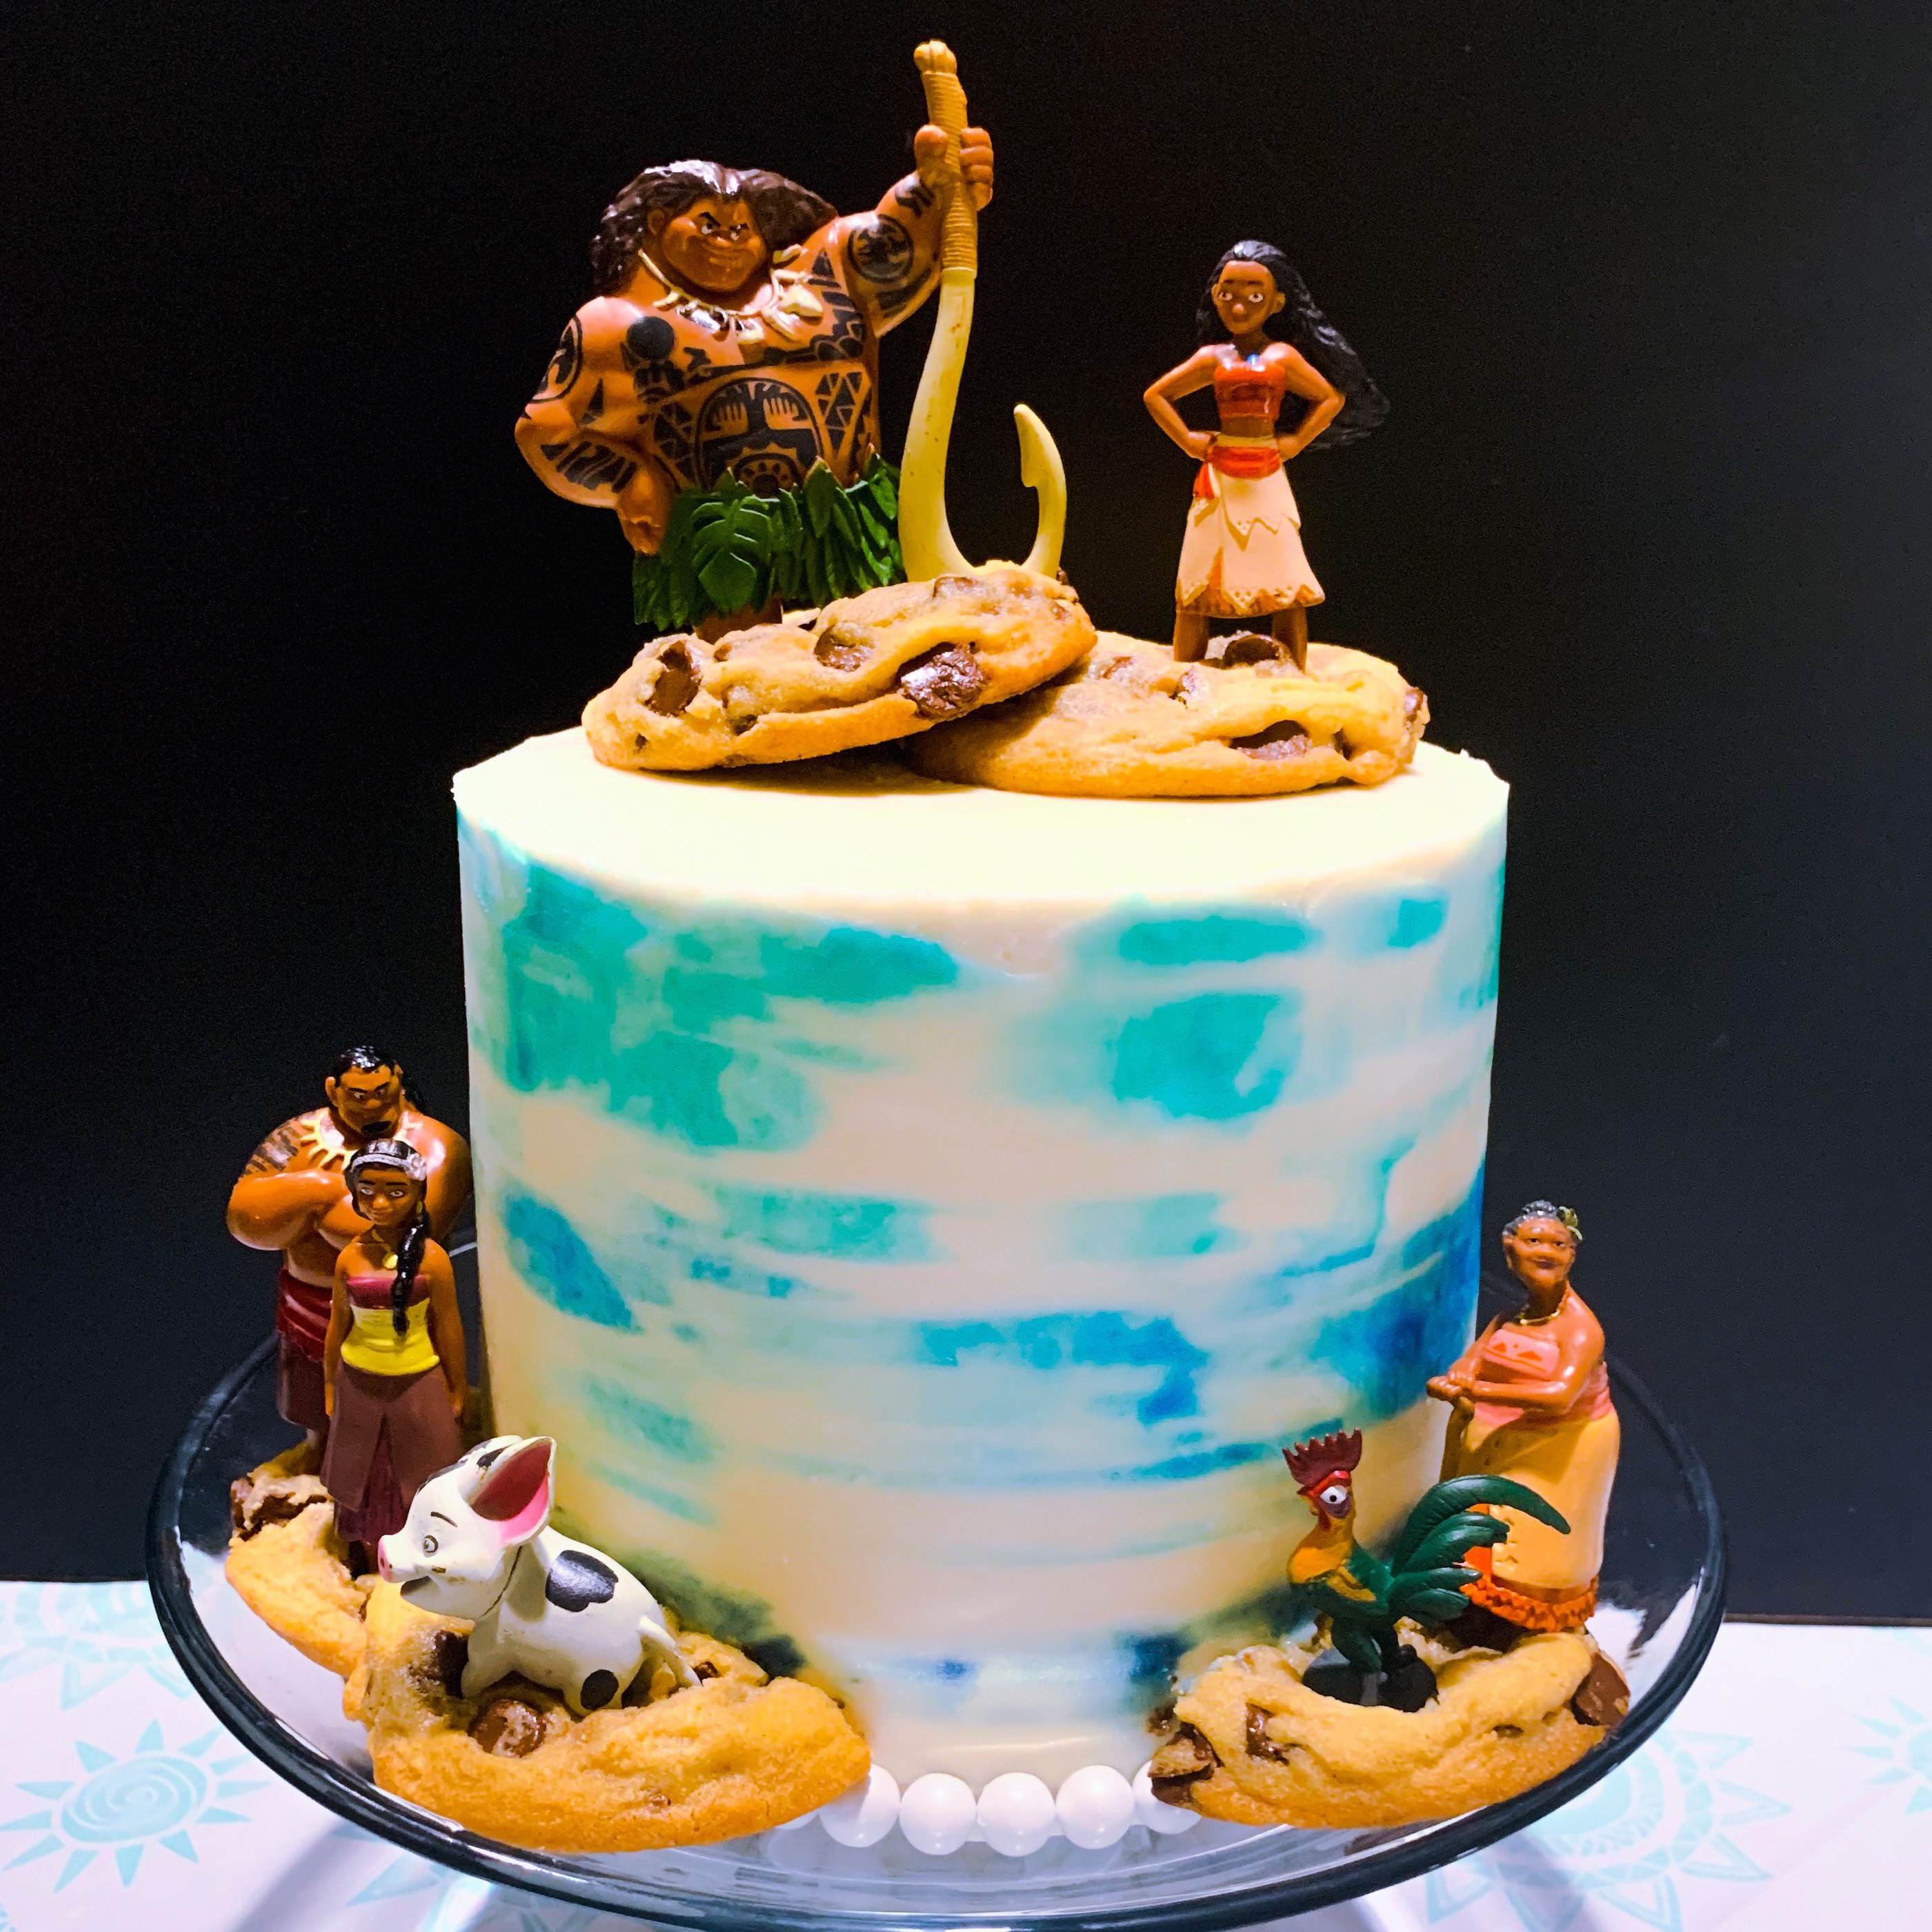 Moana Cake (Moana toppers provided by client)